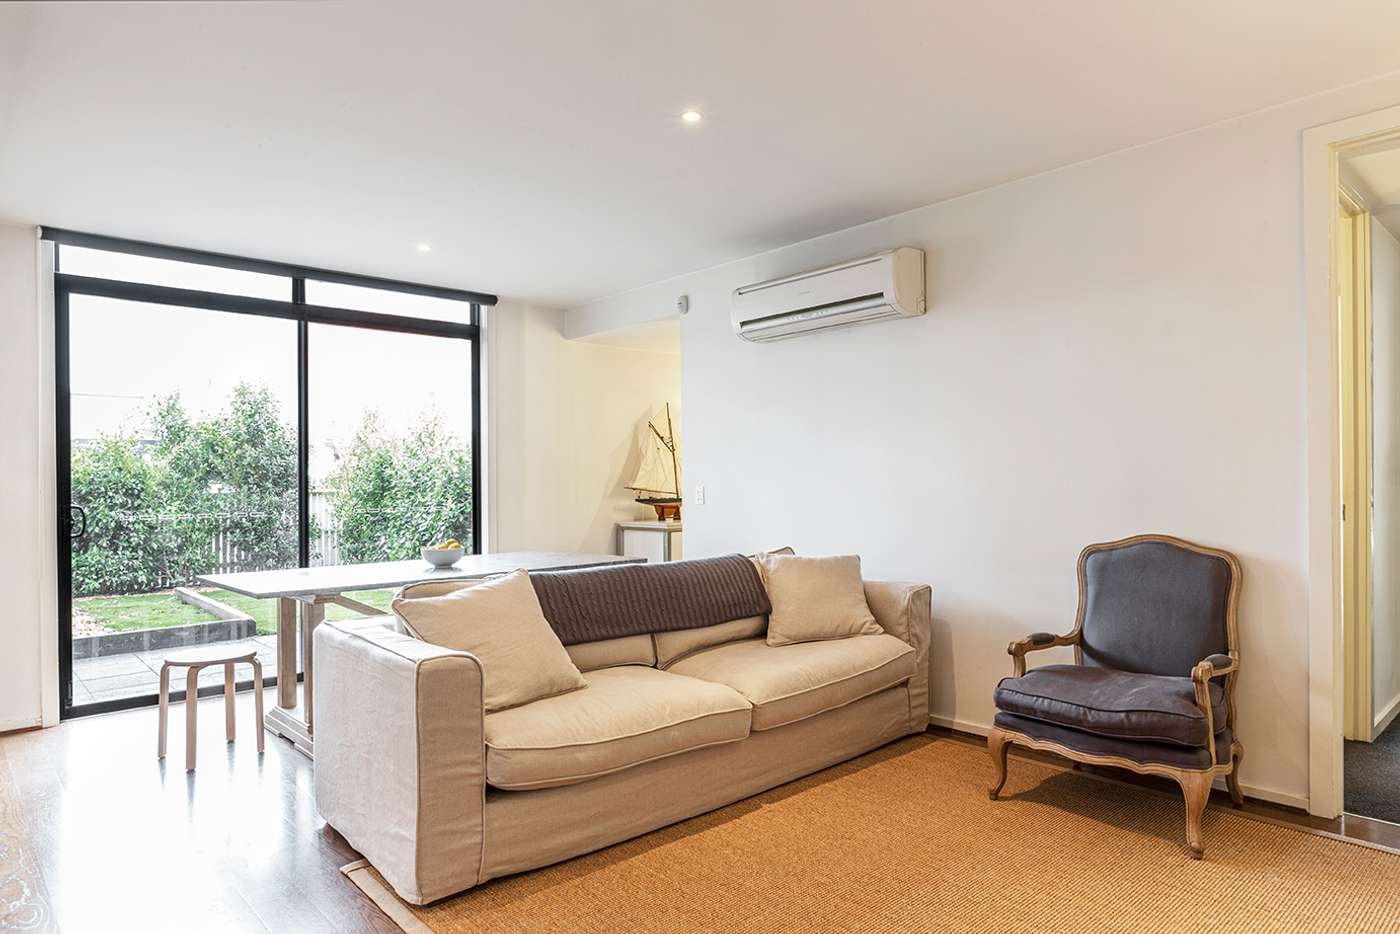 Sixth view of Homely apartment listing, 1/573-577 Glenhuntly Road, Elsternwick VIC 3185